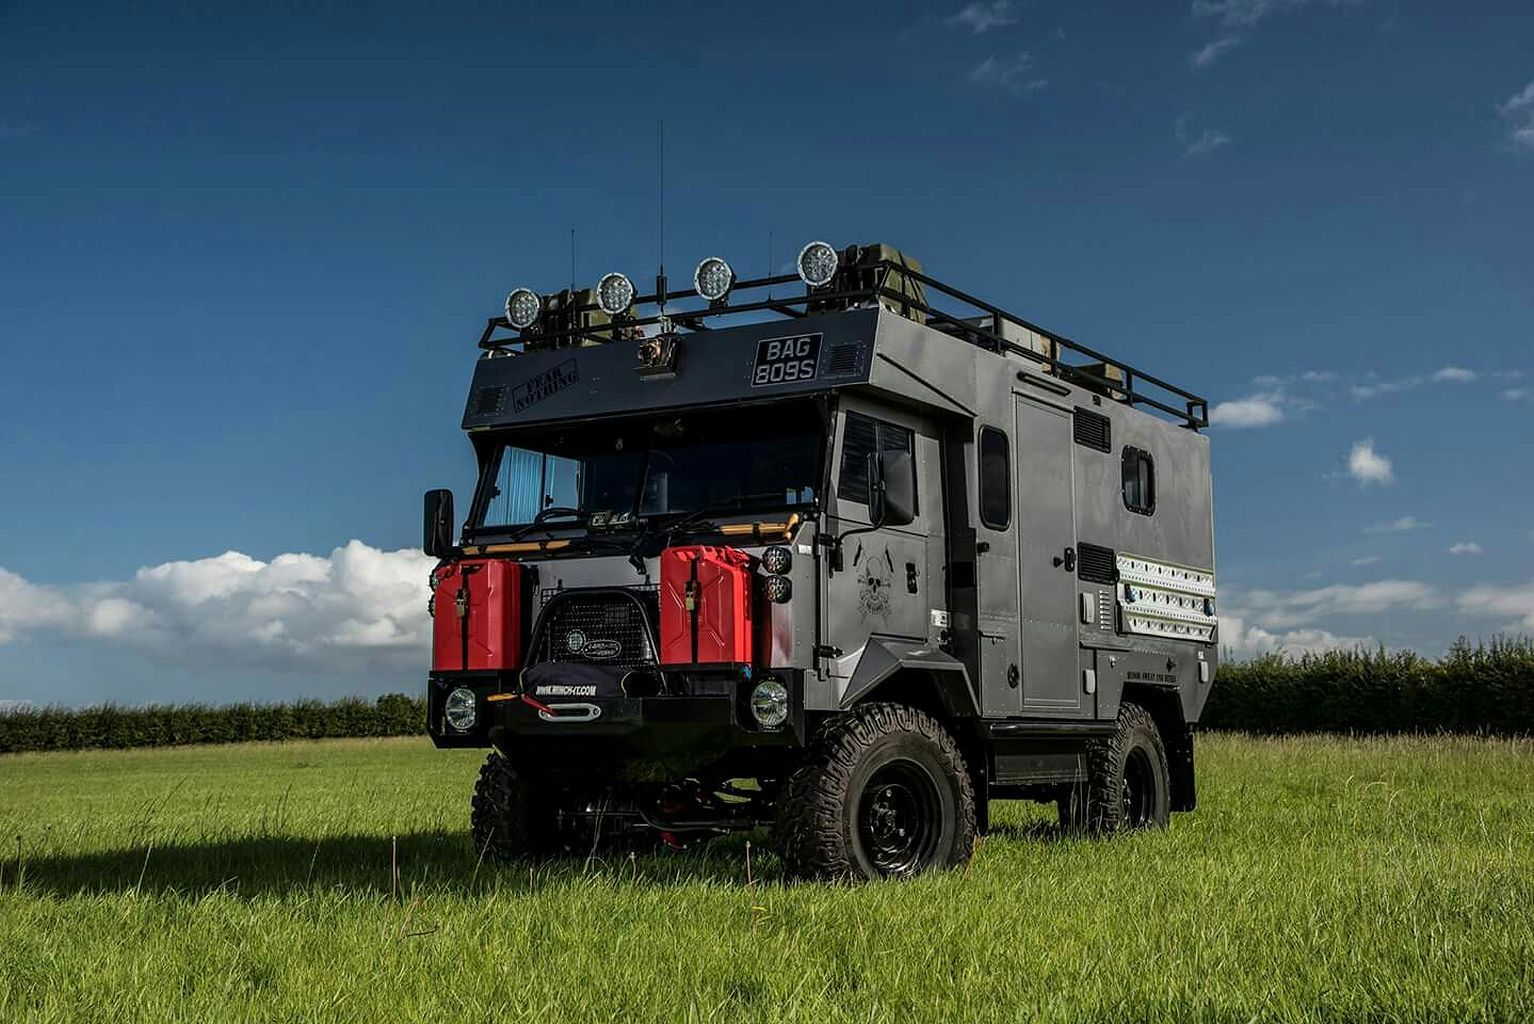 Best 25 Expedition Vehicle Ideas For You Https Www Mobmasker Com Best 25 Expedition Vehicle Ideas Expedition Vehicle Vehicles Overland Vehicles